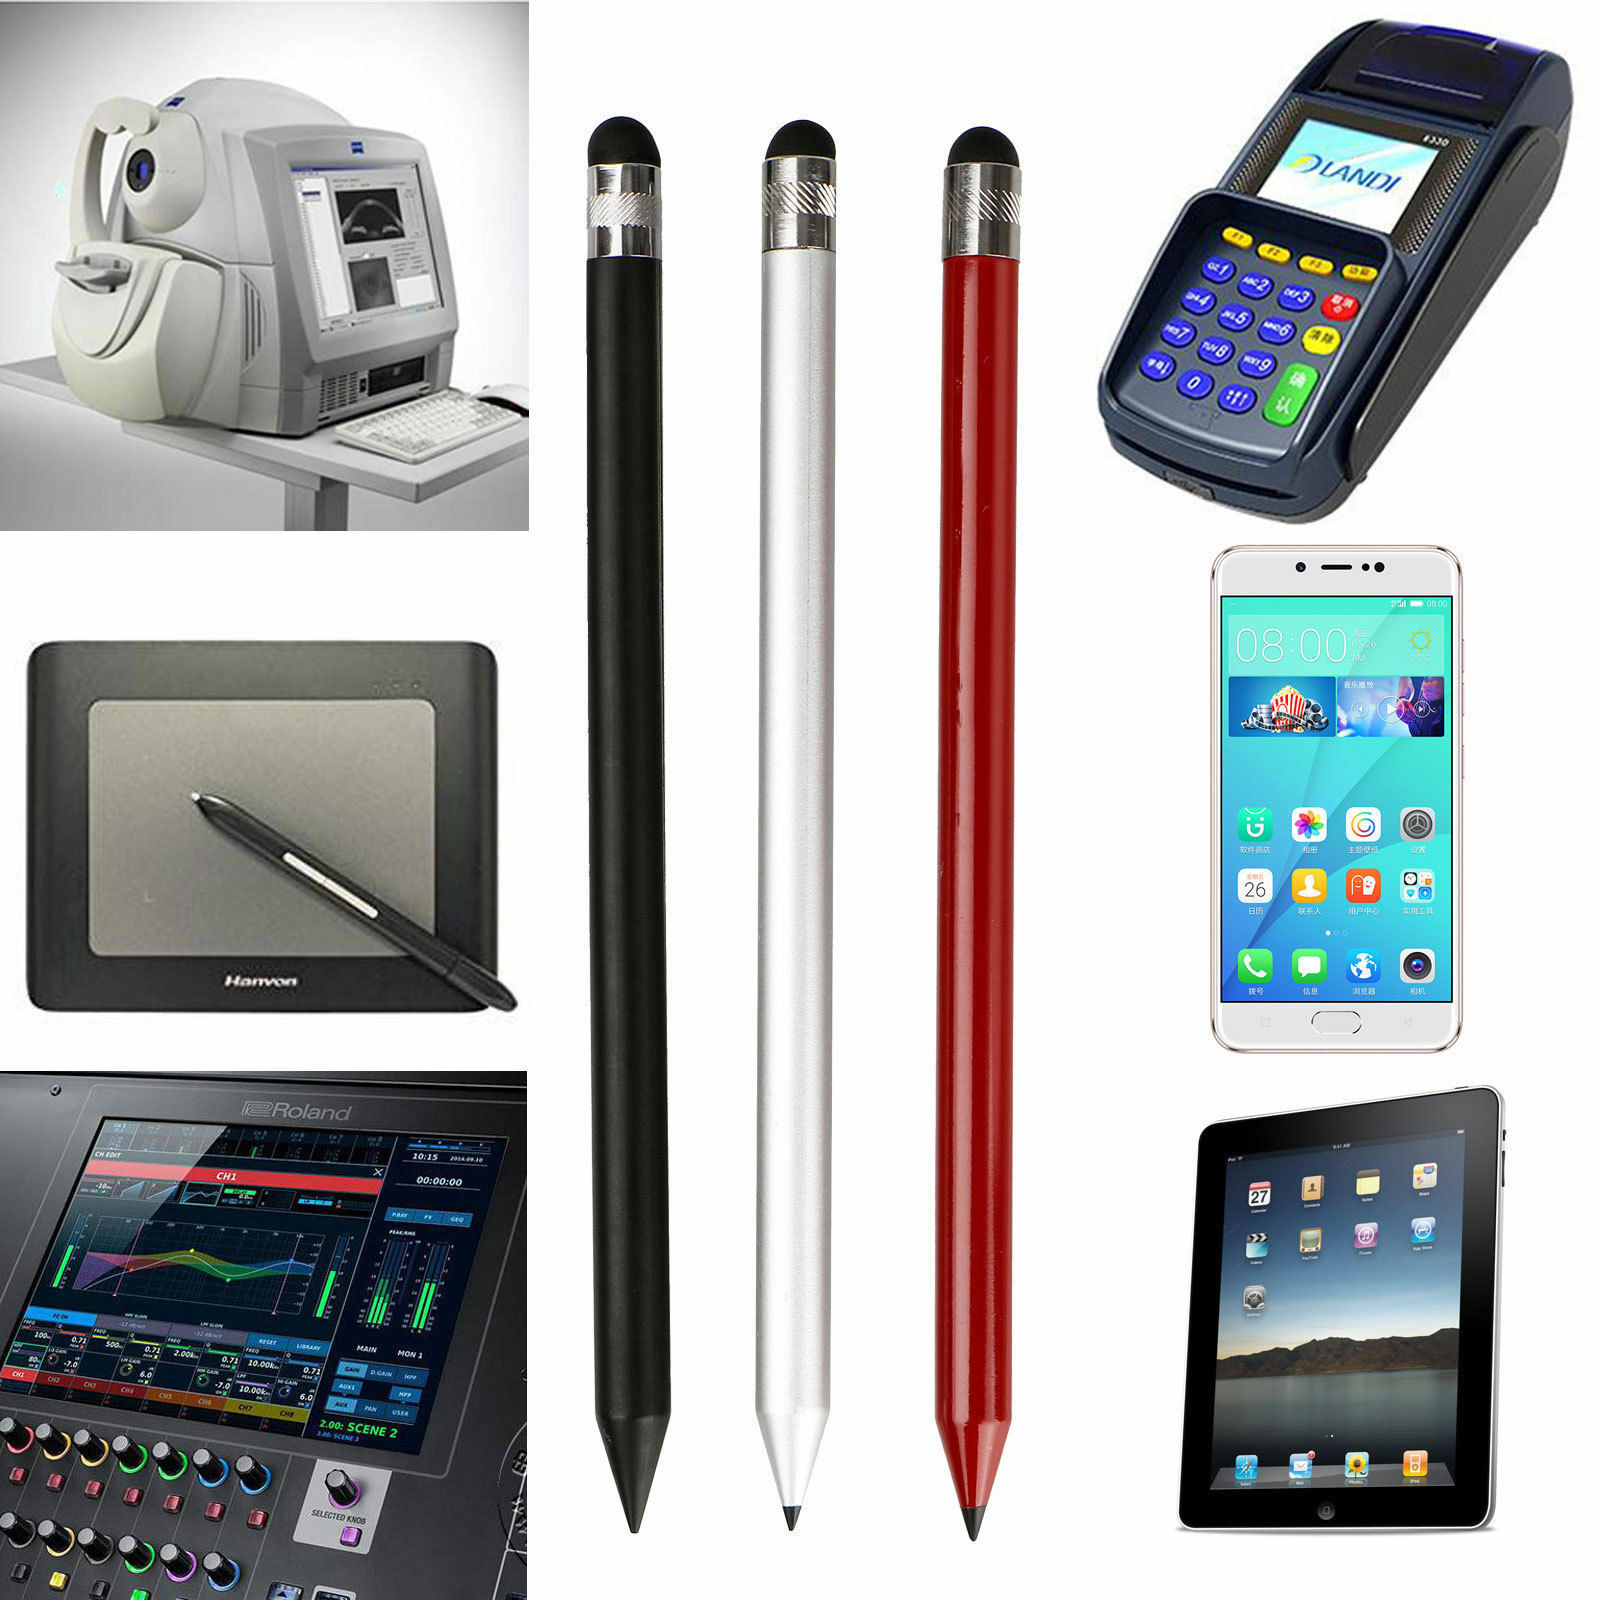 Capacitive-Pen-Touch-Screen-Stylus-Pencil-for-Tablet-iPad-Cell-Phone-Samsung-PC thumbnail 10